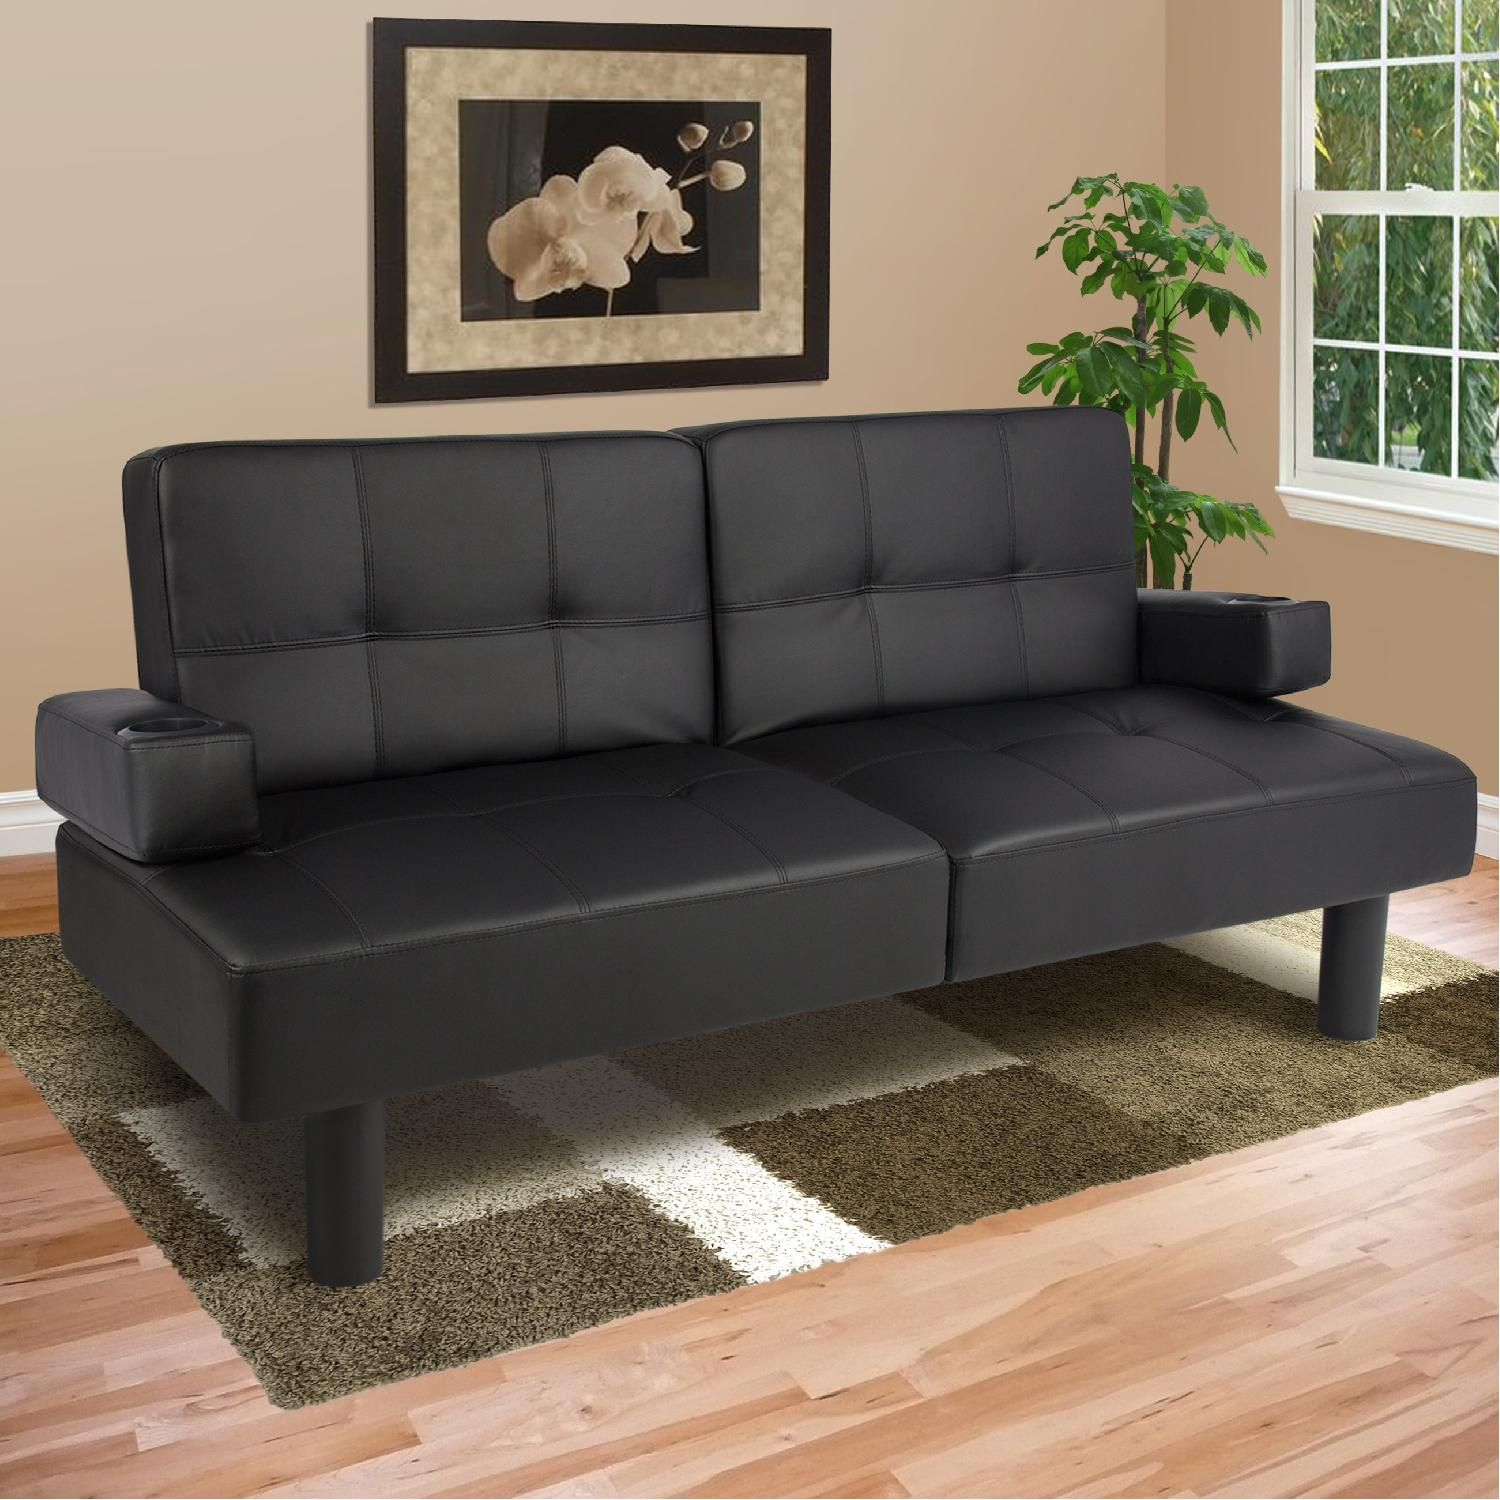 Amazing Structube Faux Leather Sofa Aptdeco Unemploymentrelief Wooden Chair Designs For Living Room Unemploymentrelieforg